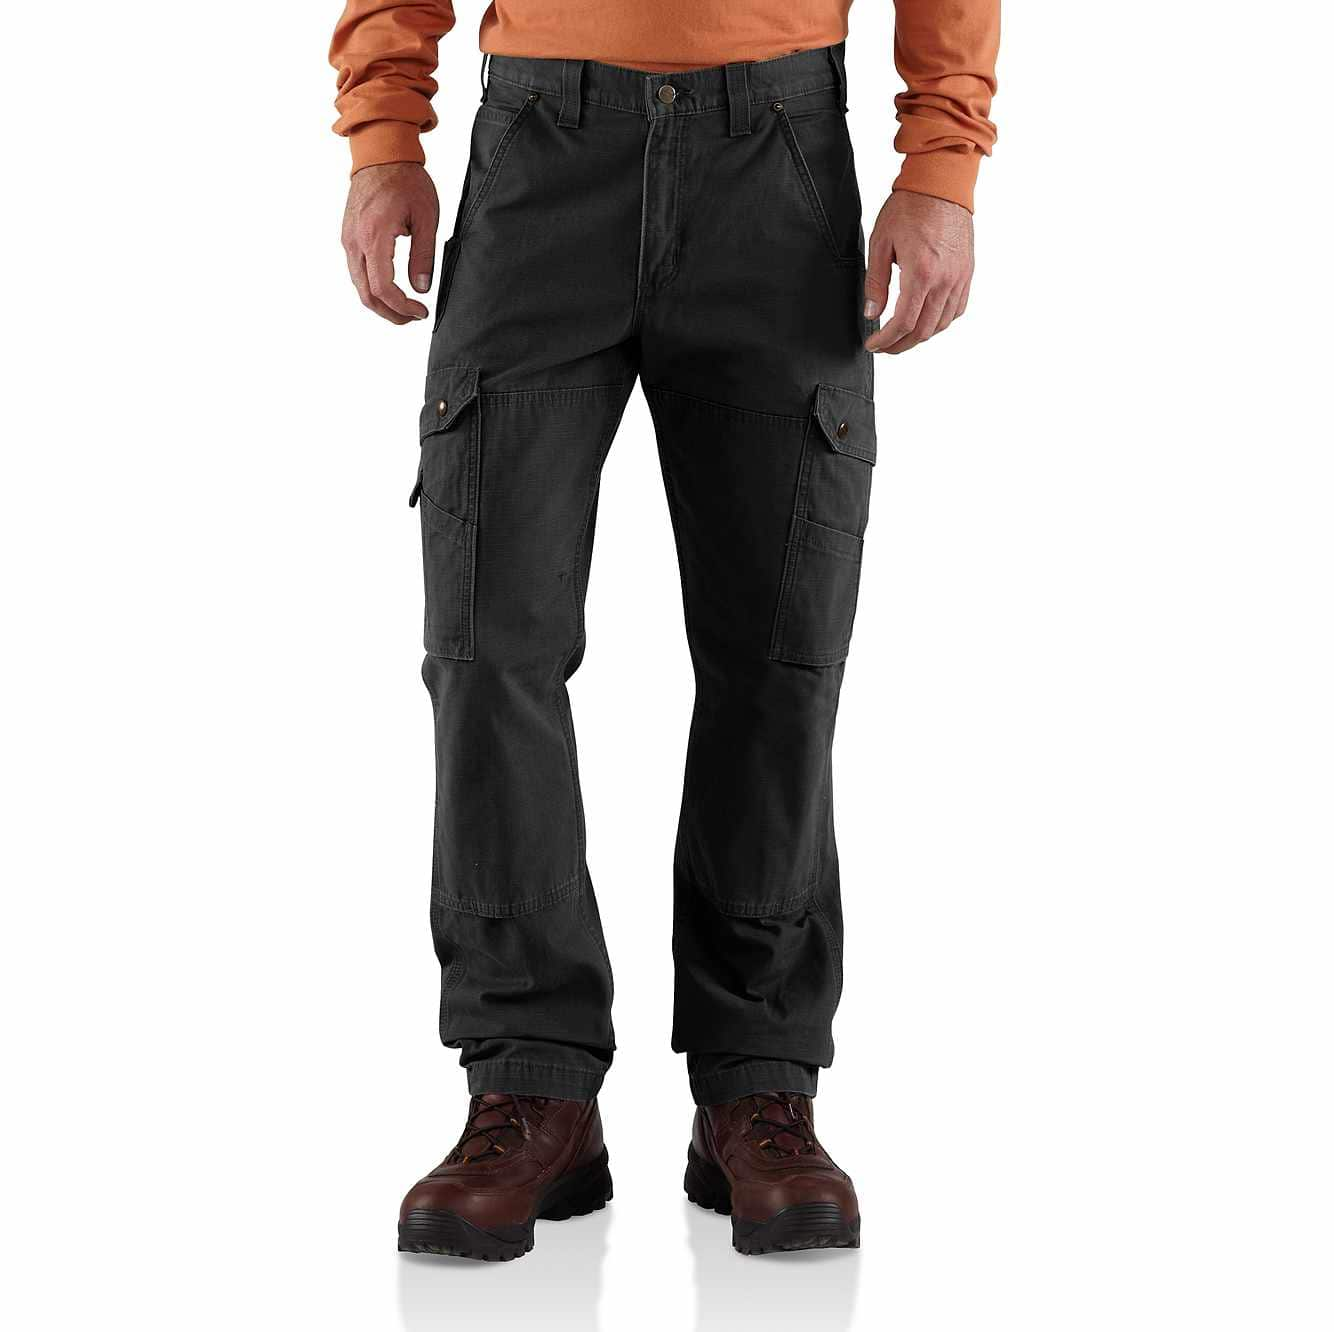 Picture of Cotton Ripstop Relaxed Fit Double-Front Cargo Work Pant in Black